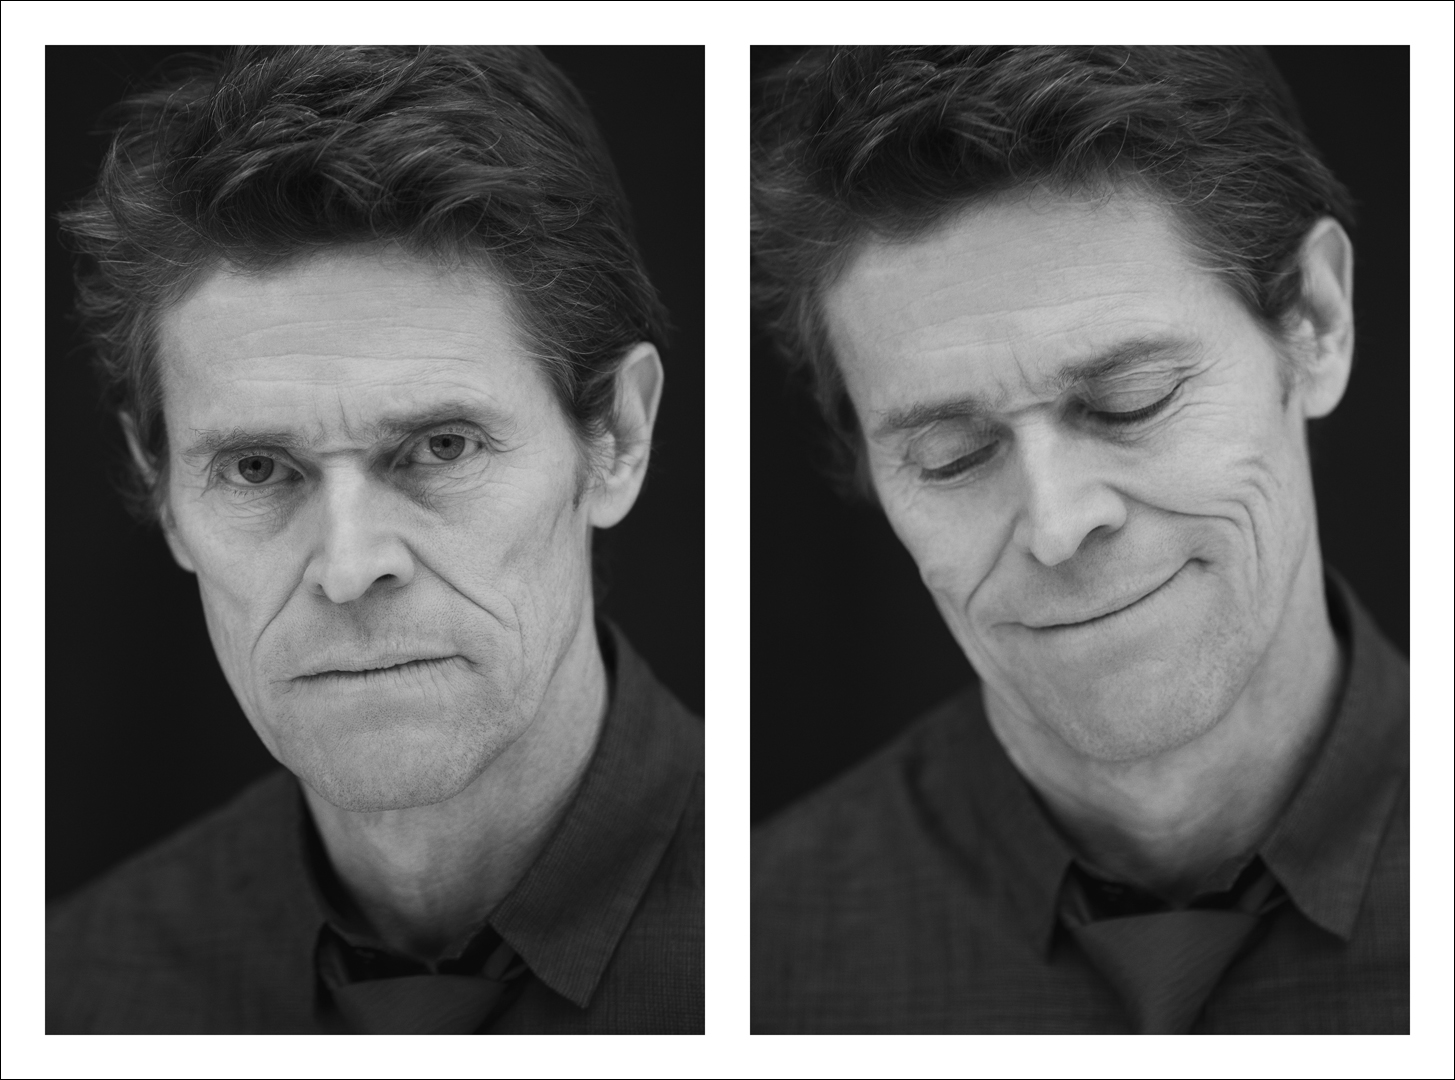 41_TIM_BARBER_WILLEM_DAFOE.jpg